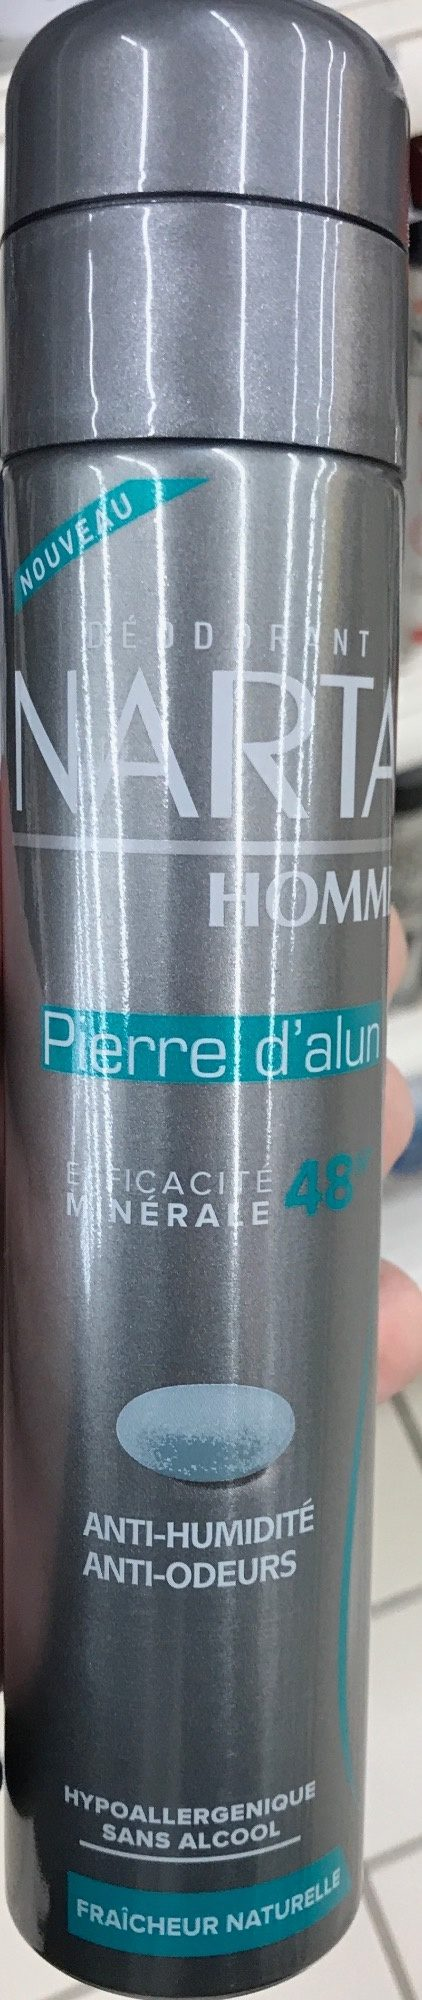 Pierre d'alun 48H - Product